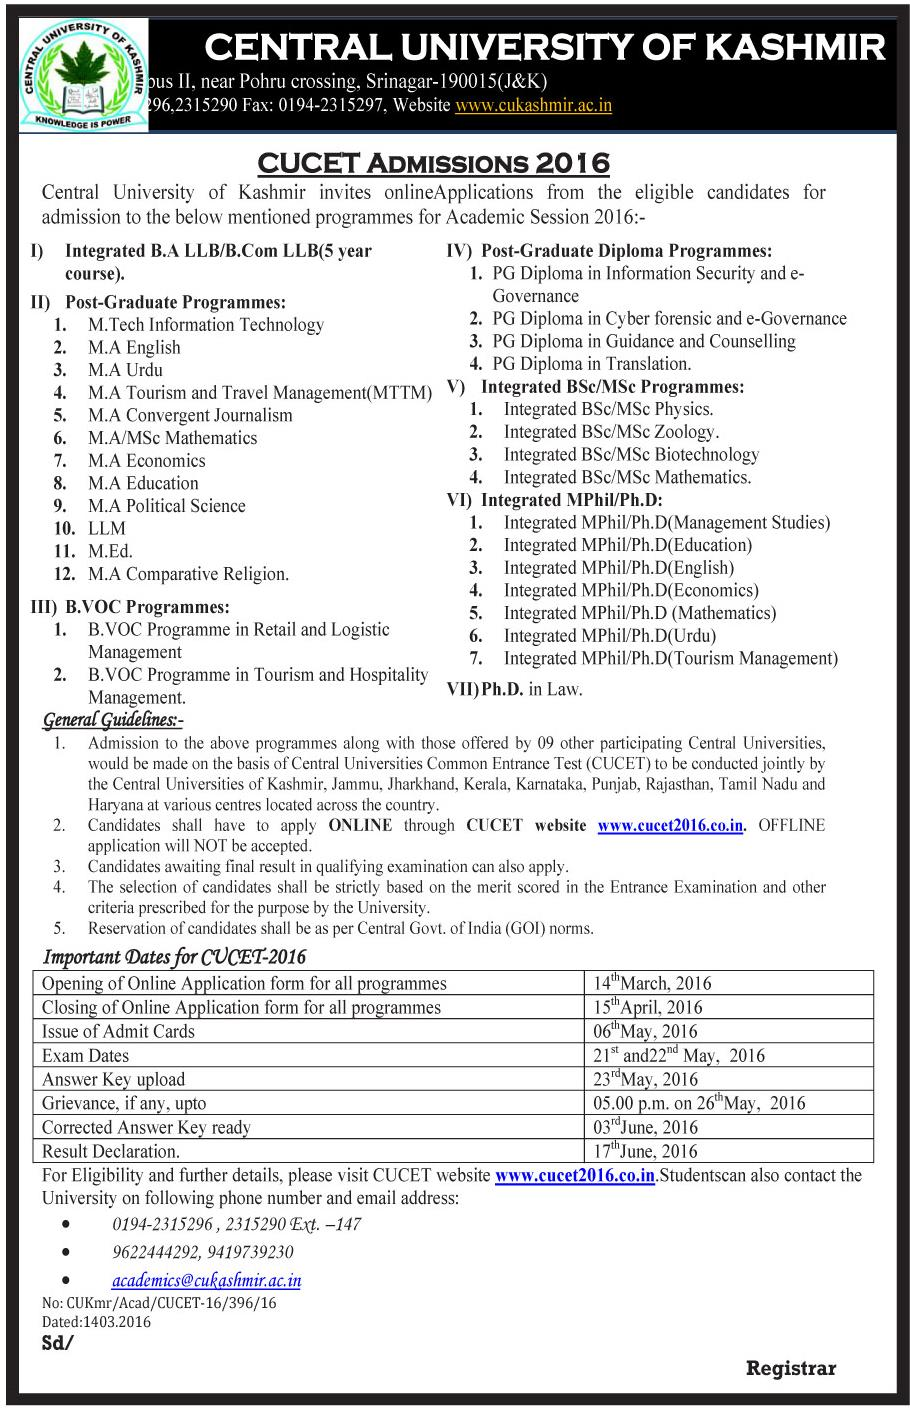 Central University of Kashmir - CUCET Admissions 2016